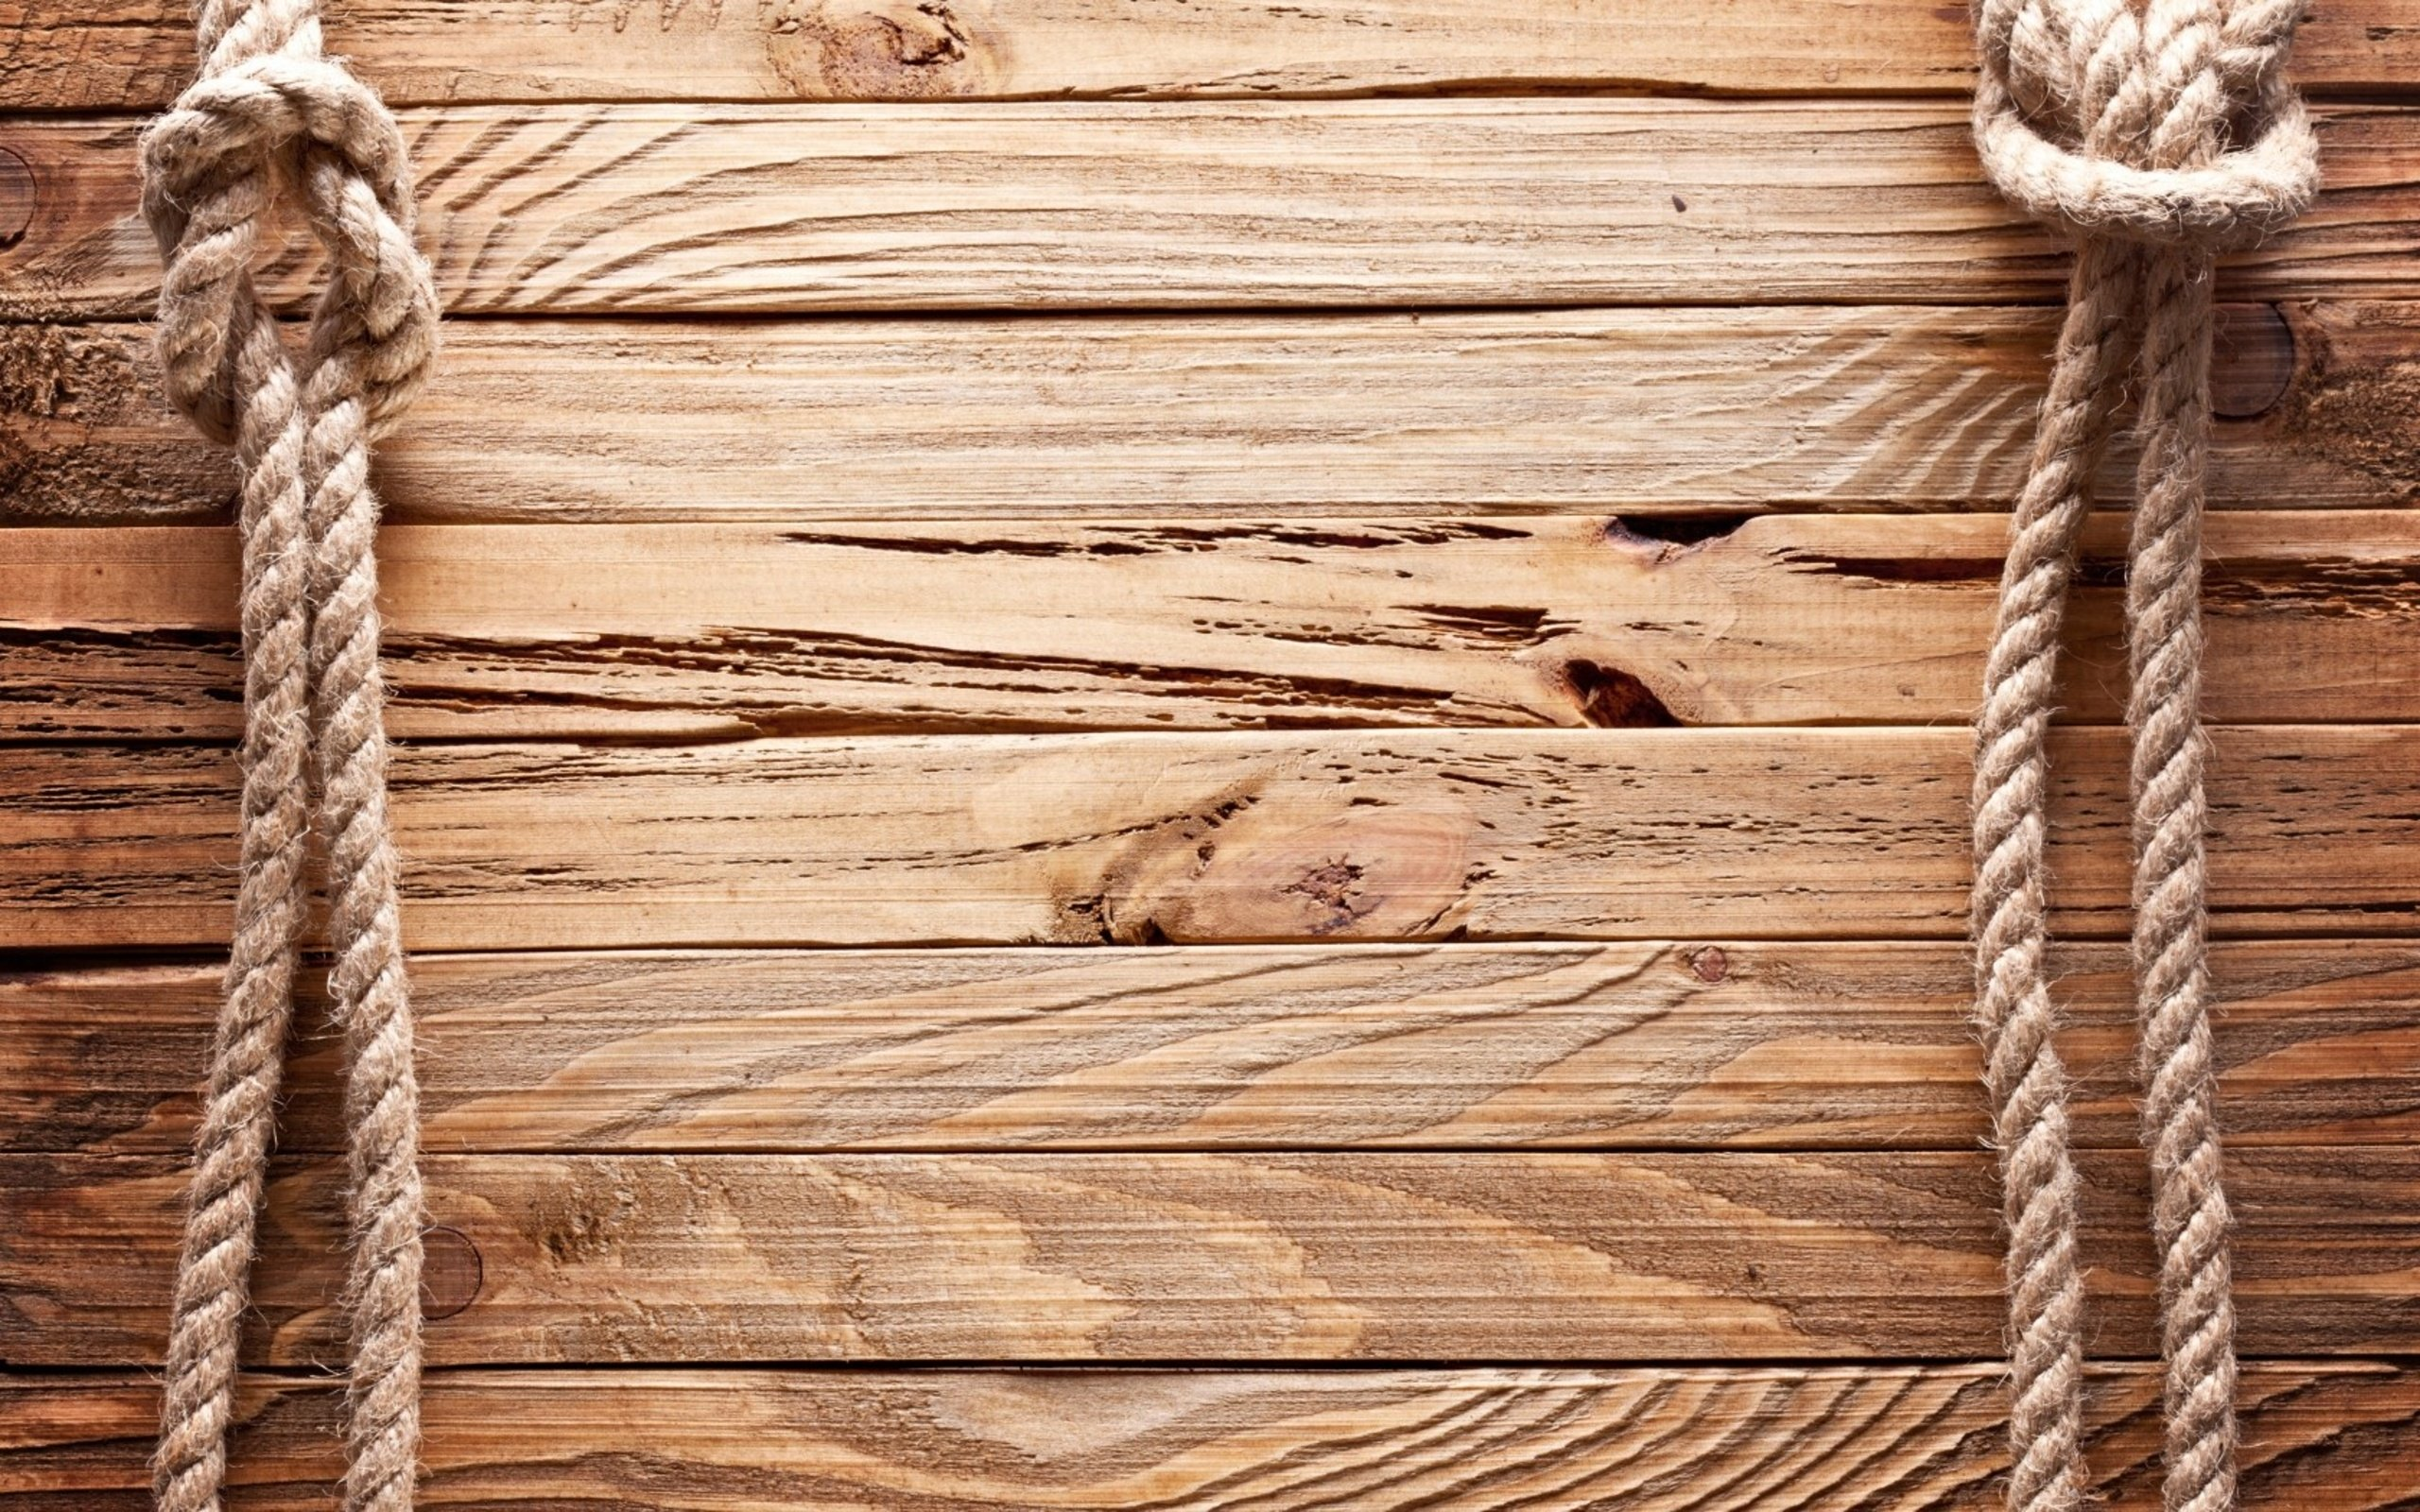 50 HD Wood Wallpapers For Download 2560x1600